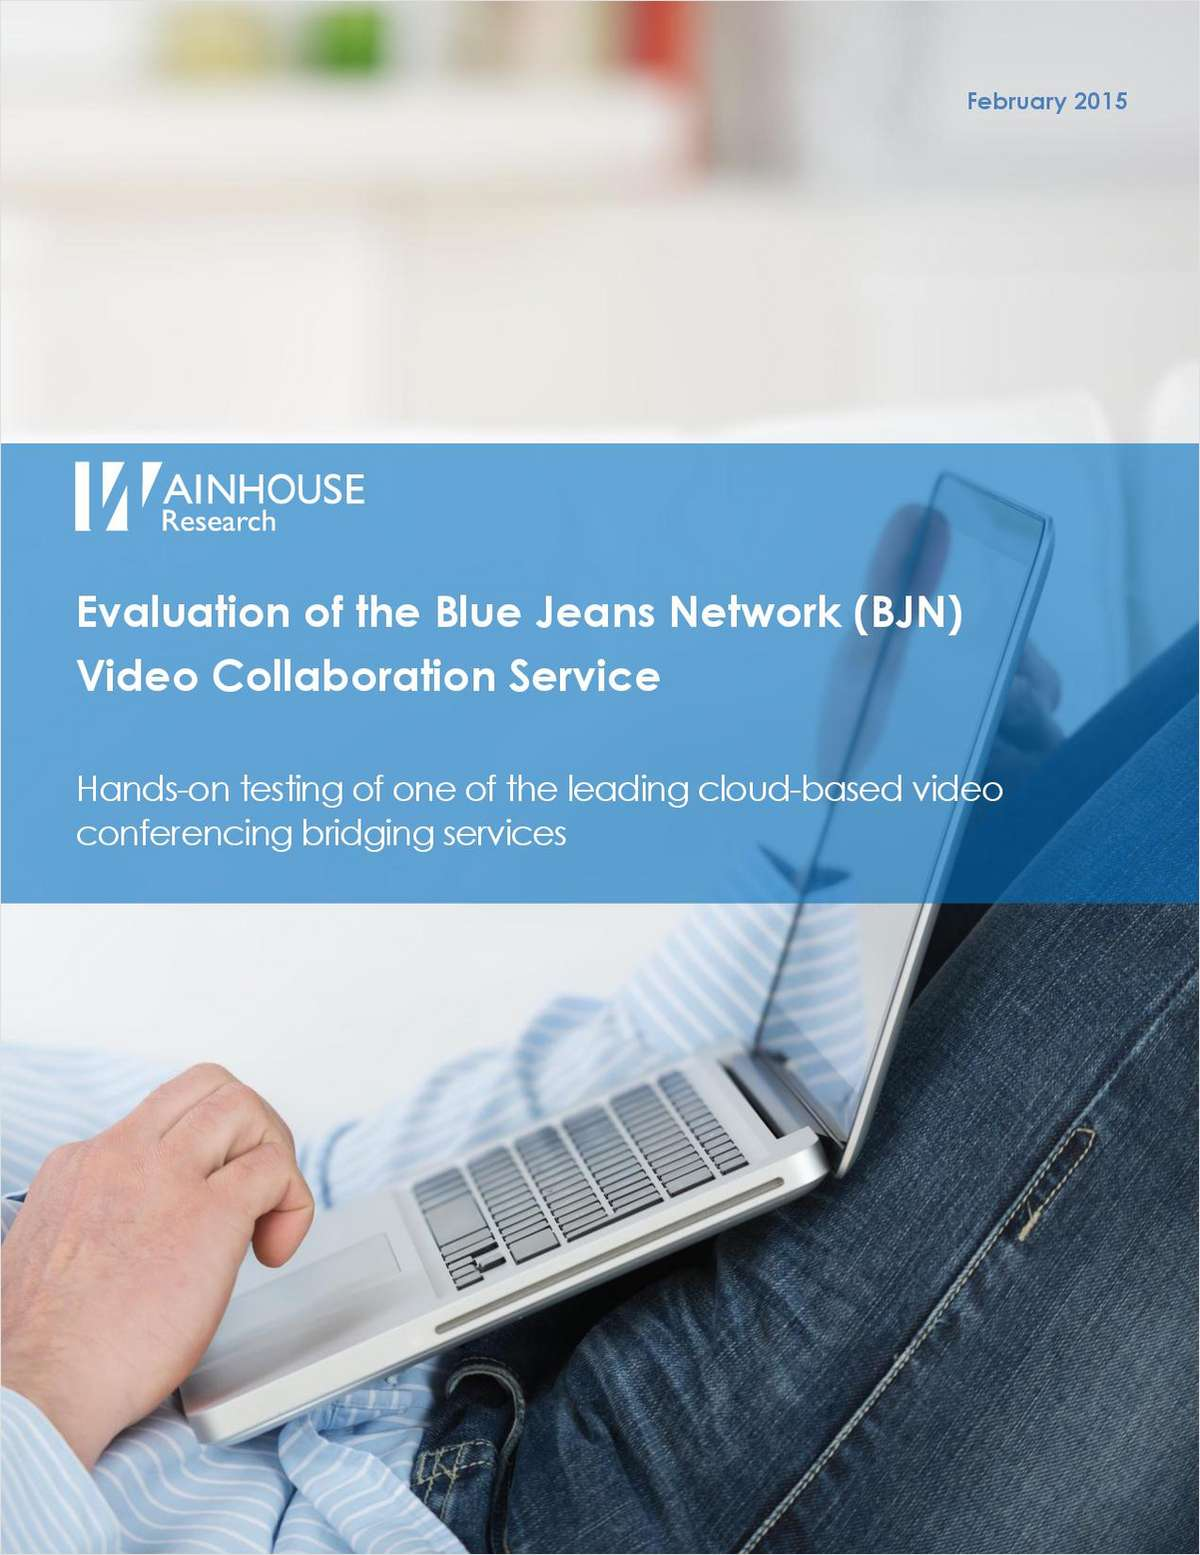 Evaluation of the Blue Jeans Network (BJN) Video Collaboration Service